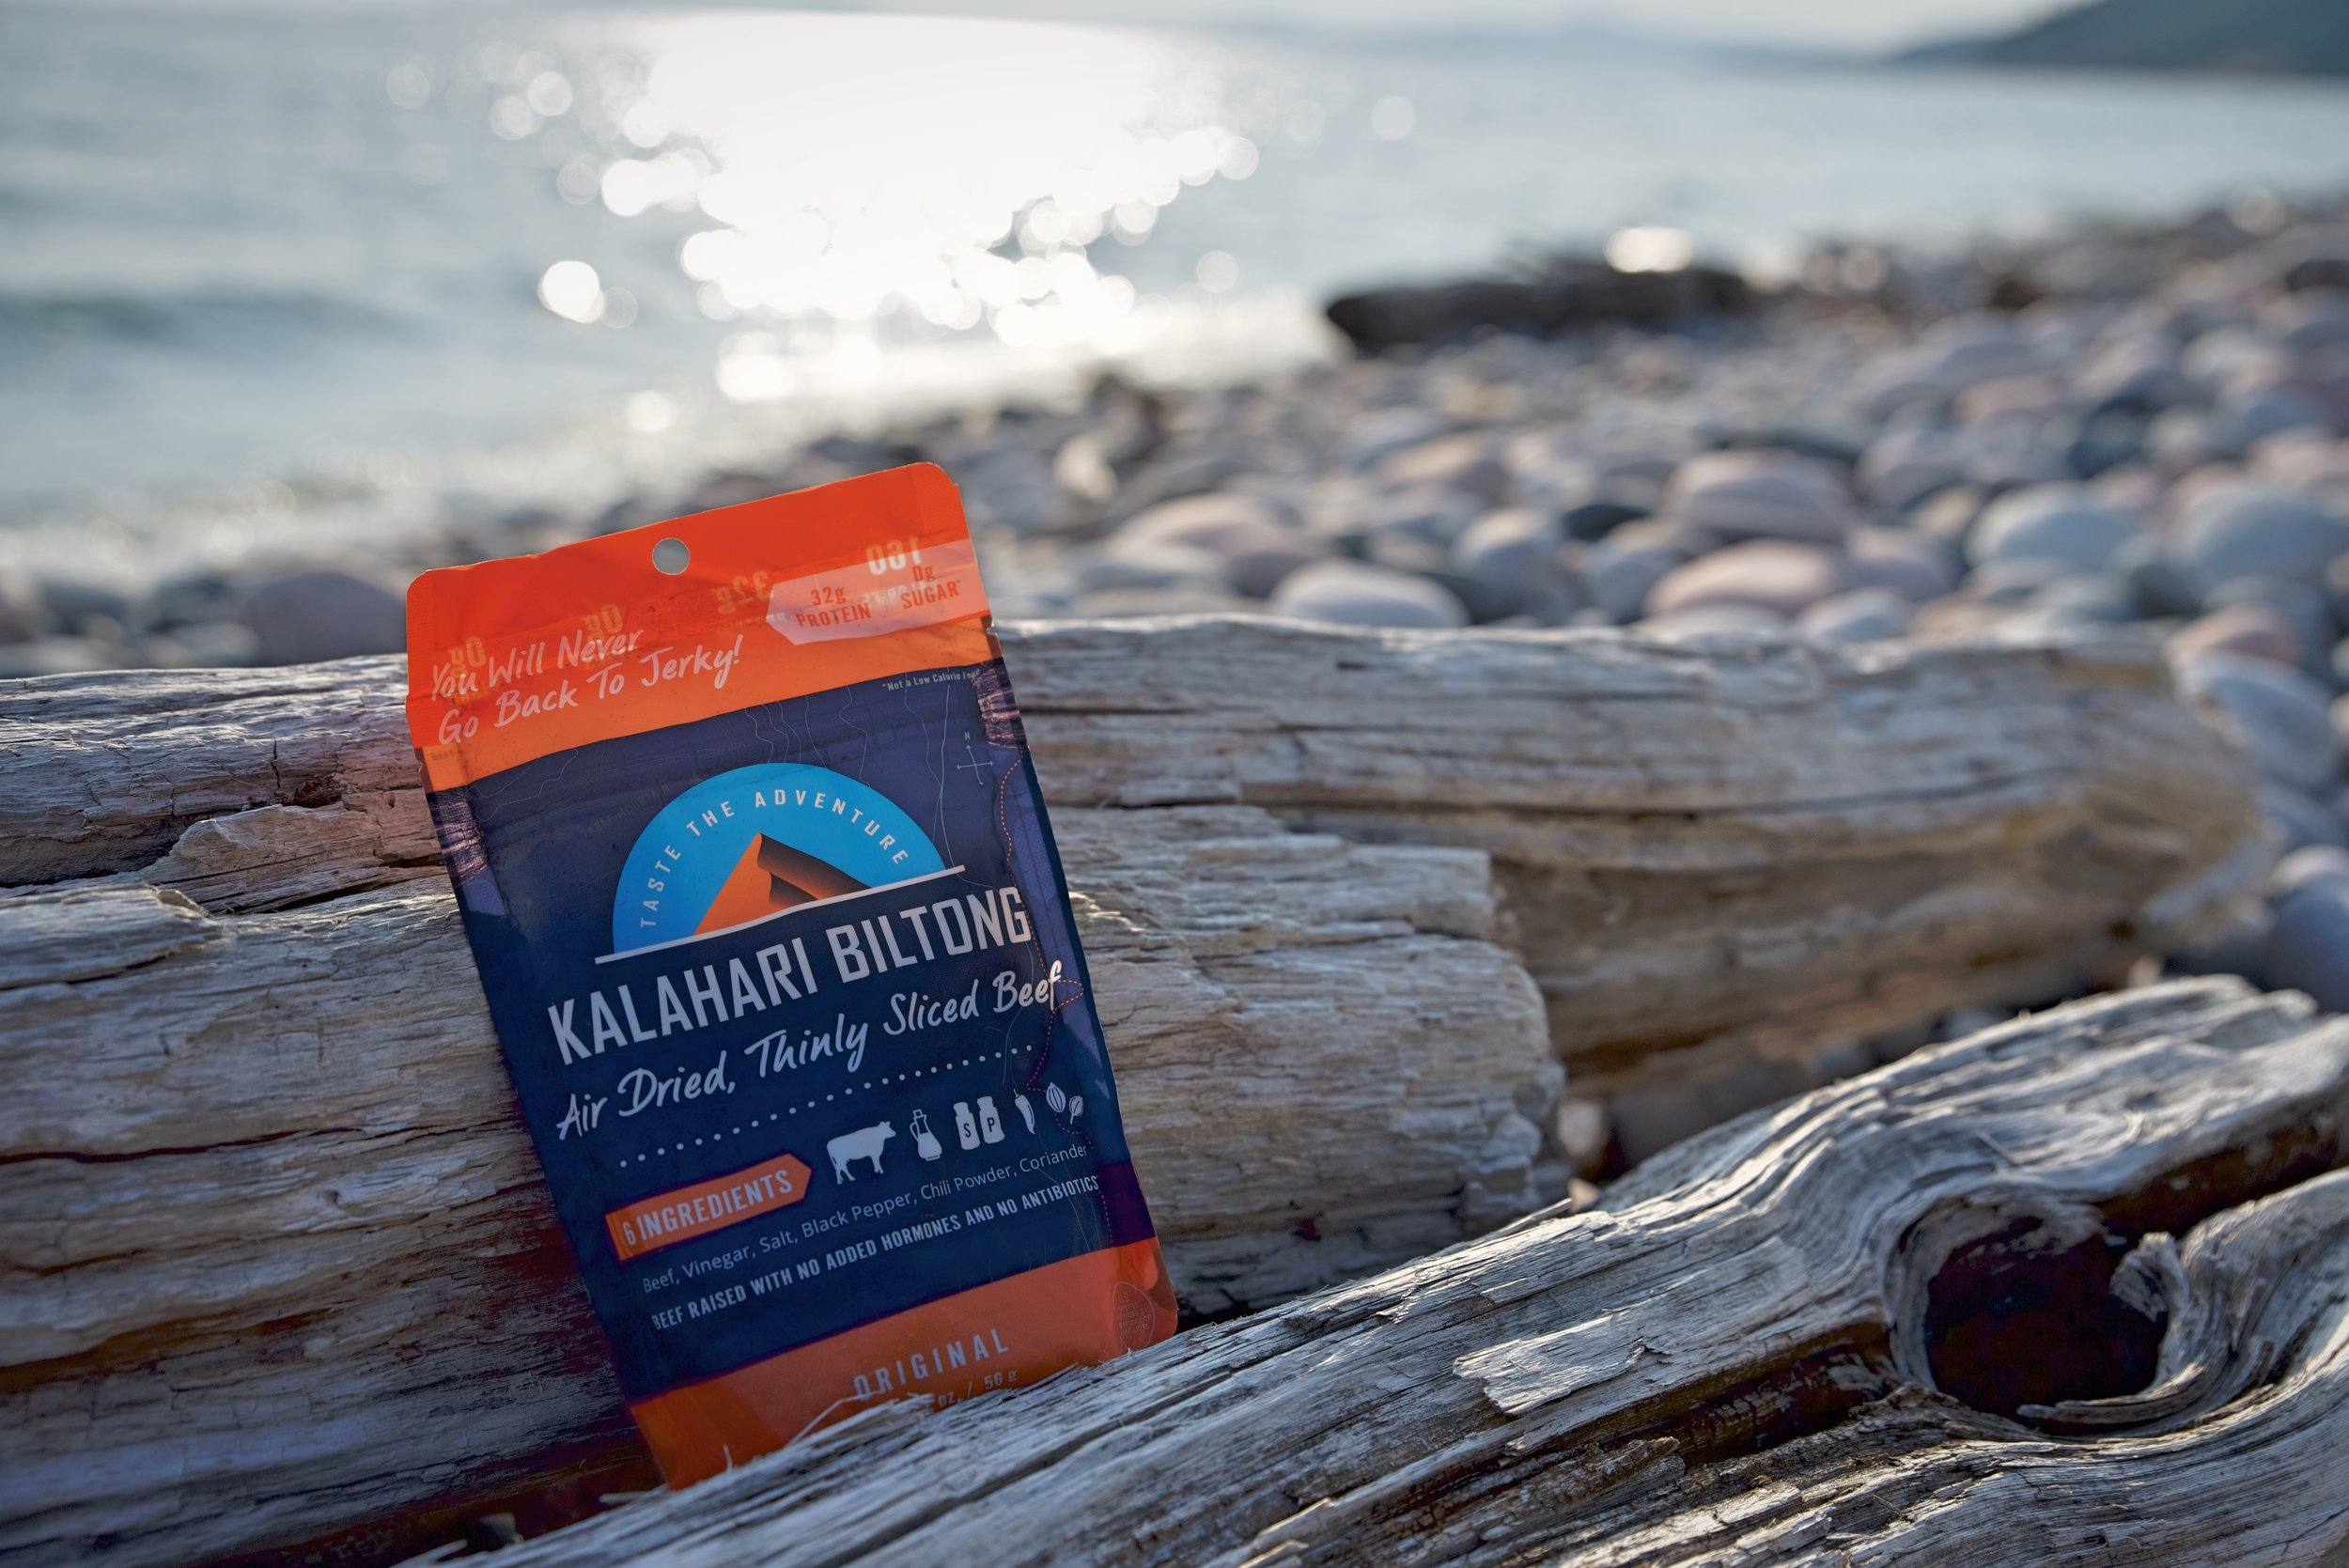 Kalahari Biltong has no carbs or sugar, which is a great contrast from so many other trail foods.